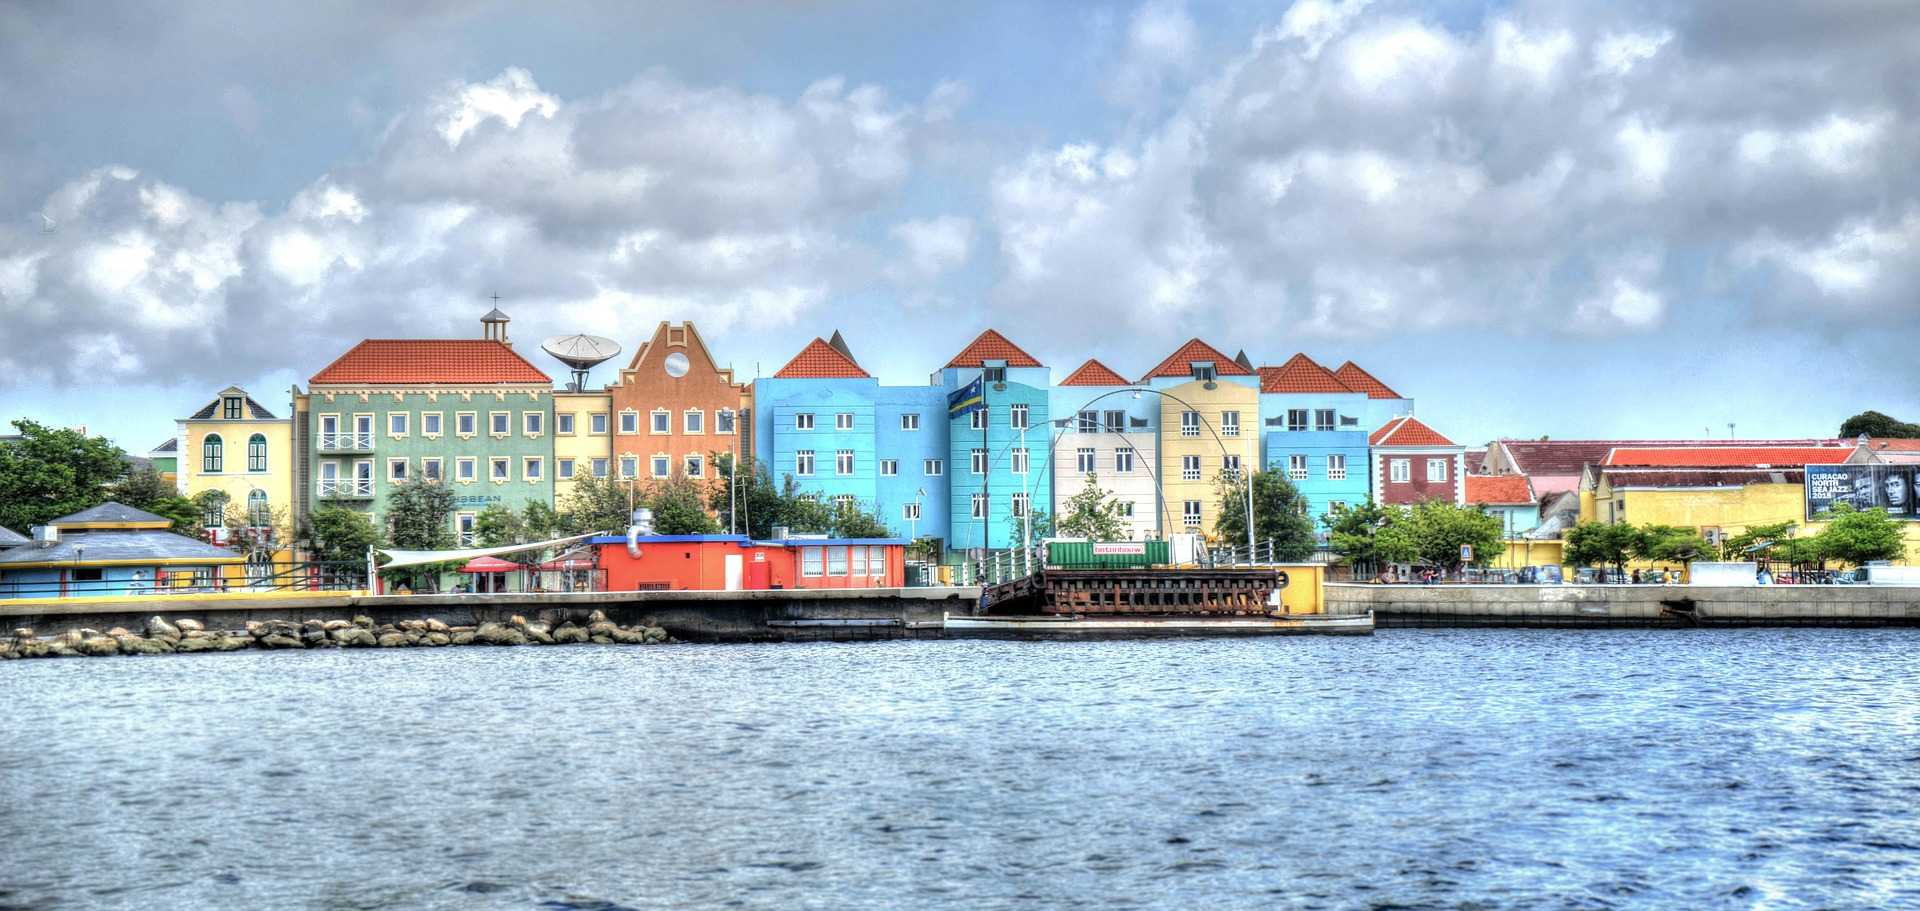 original_willemstad-906112_1920